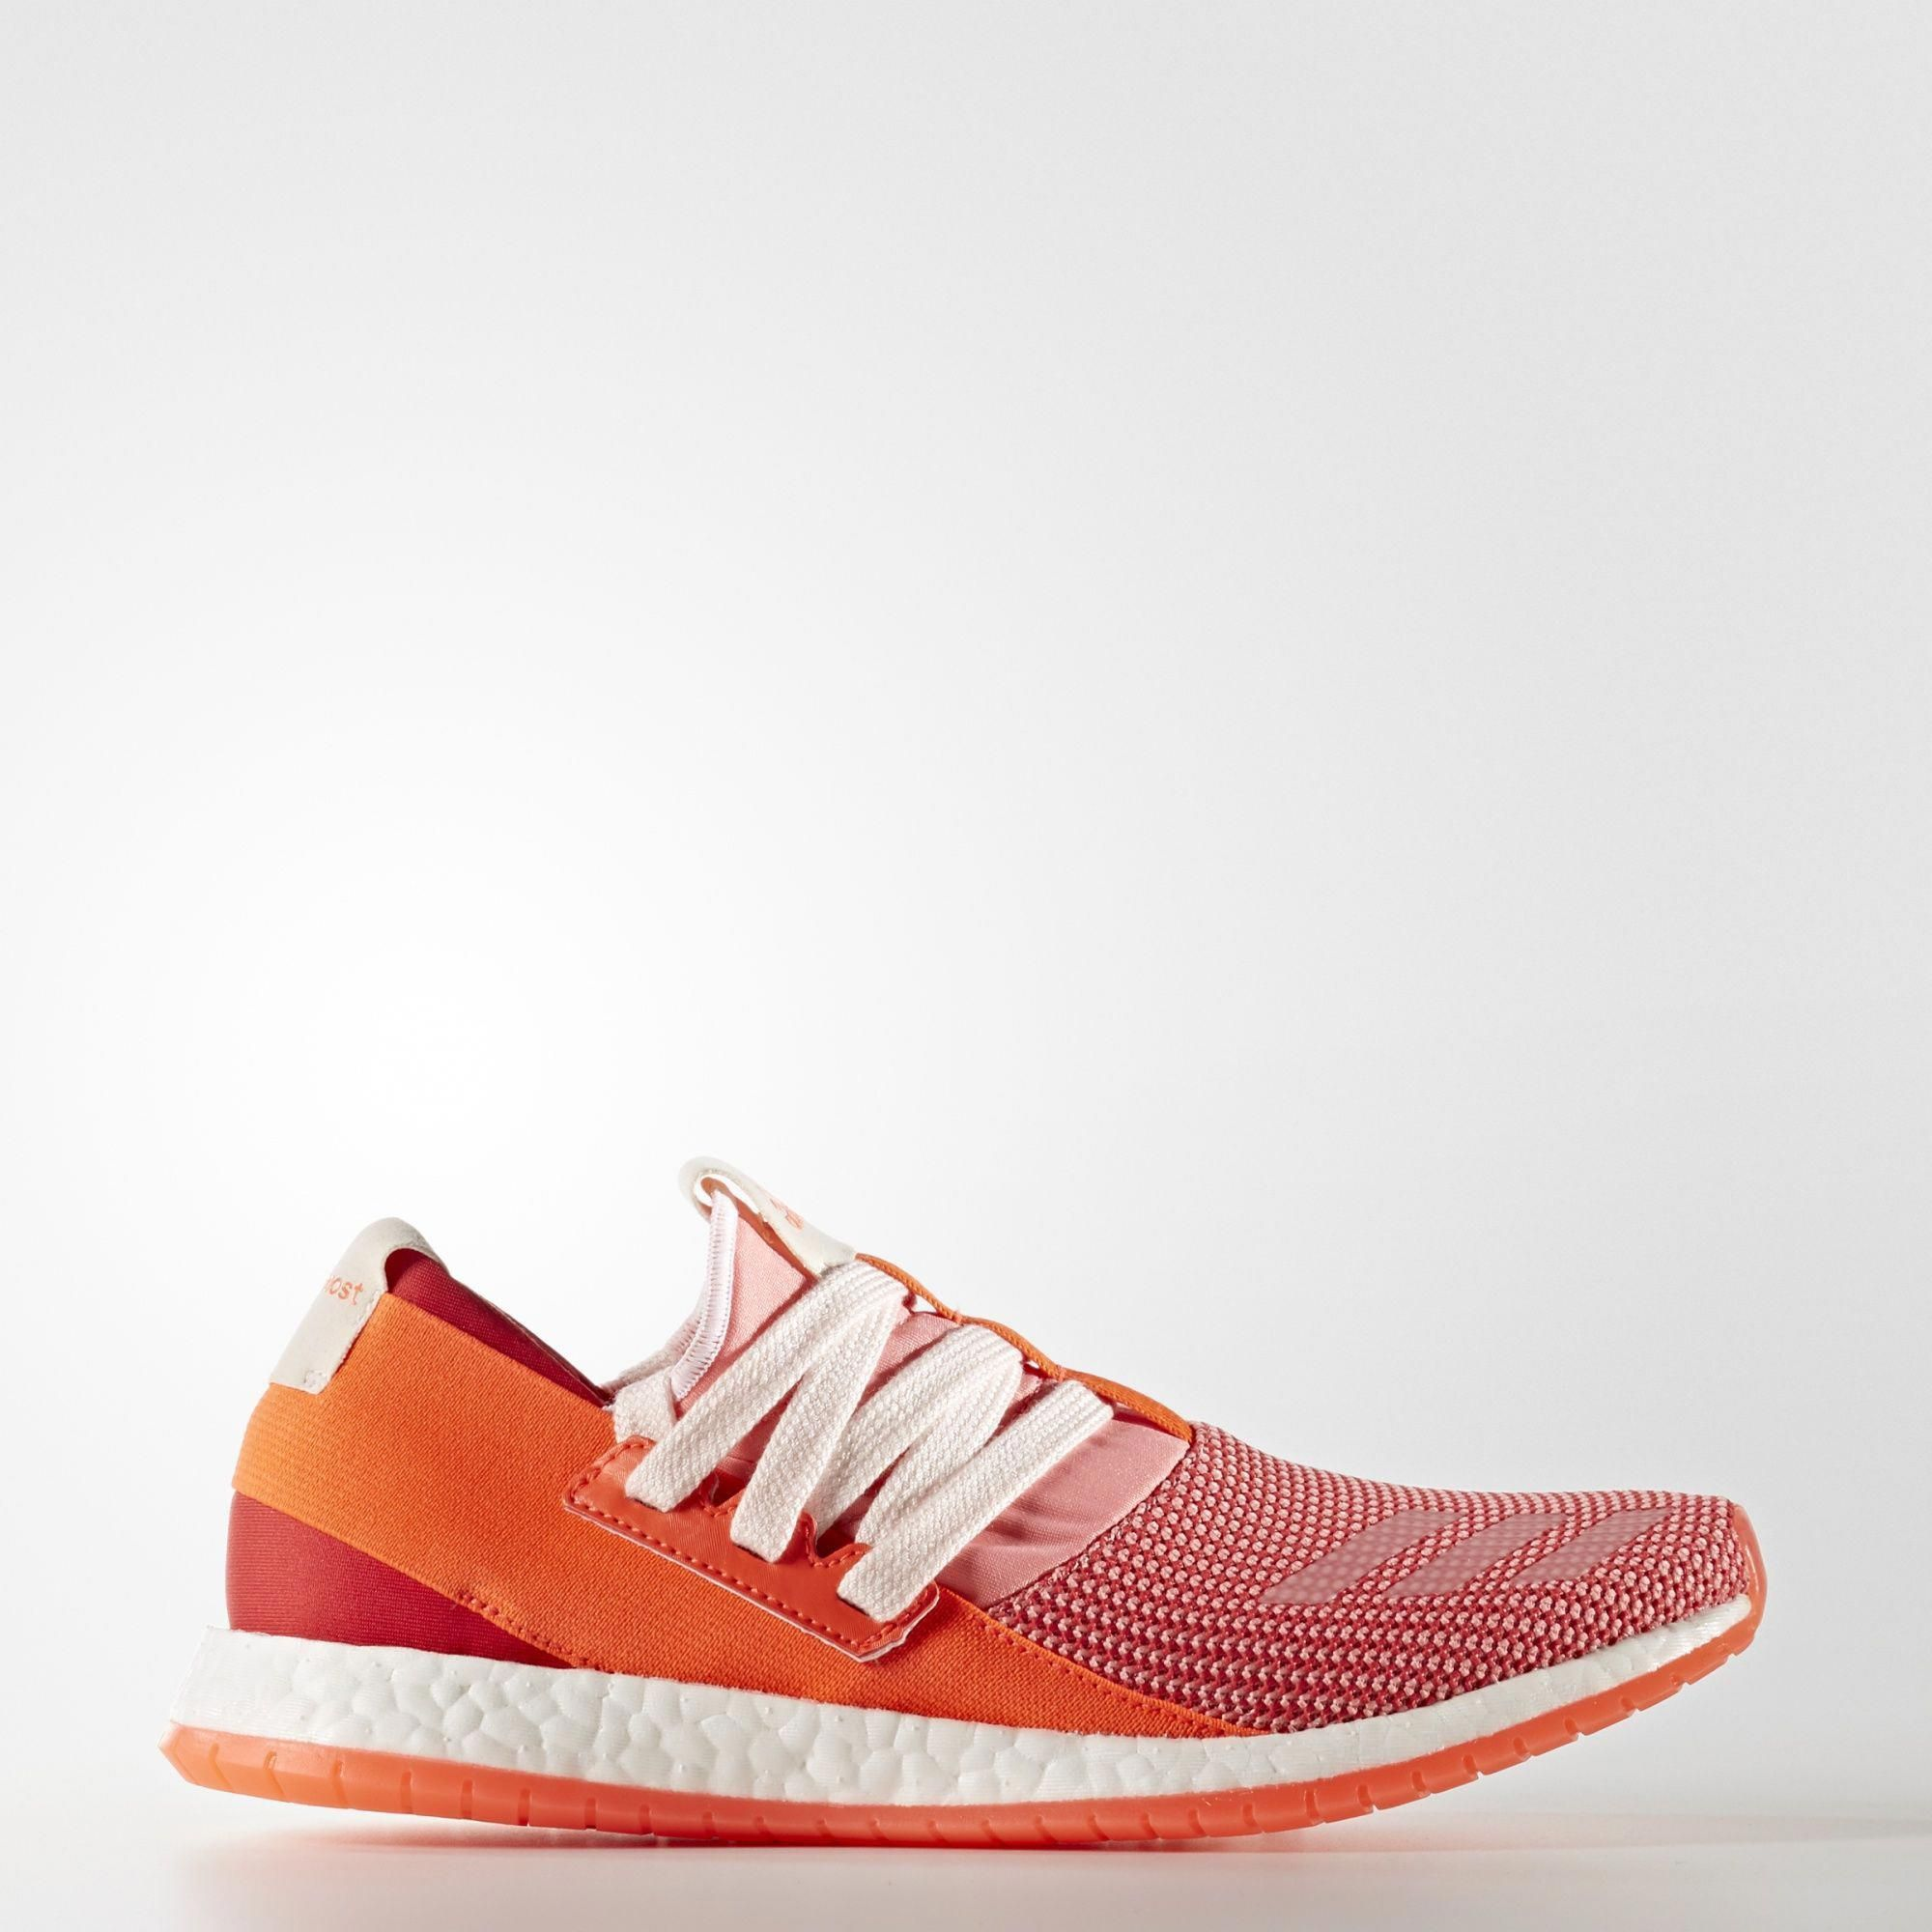 87f123986a4ca adidas - Pure Boost R Shoes  WomensrunningShoesFreeShipping ...